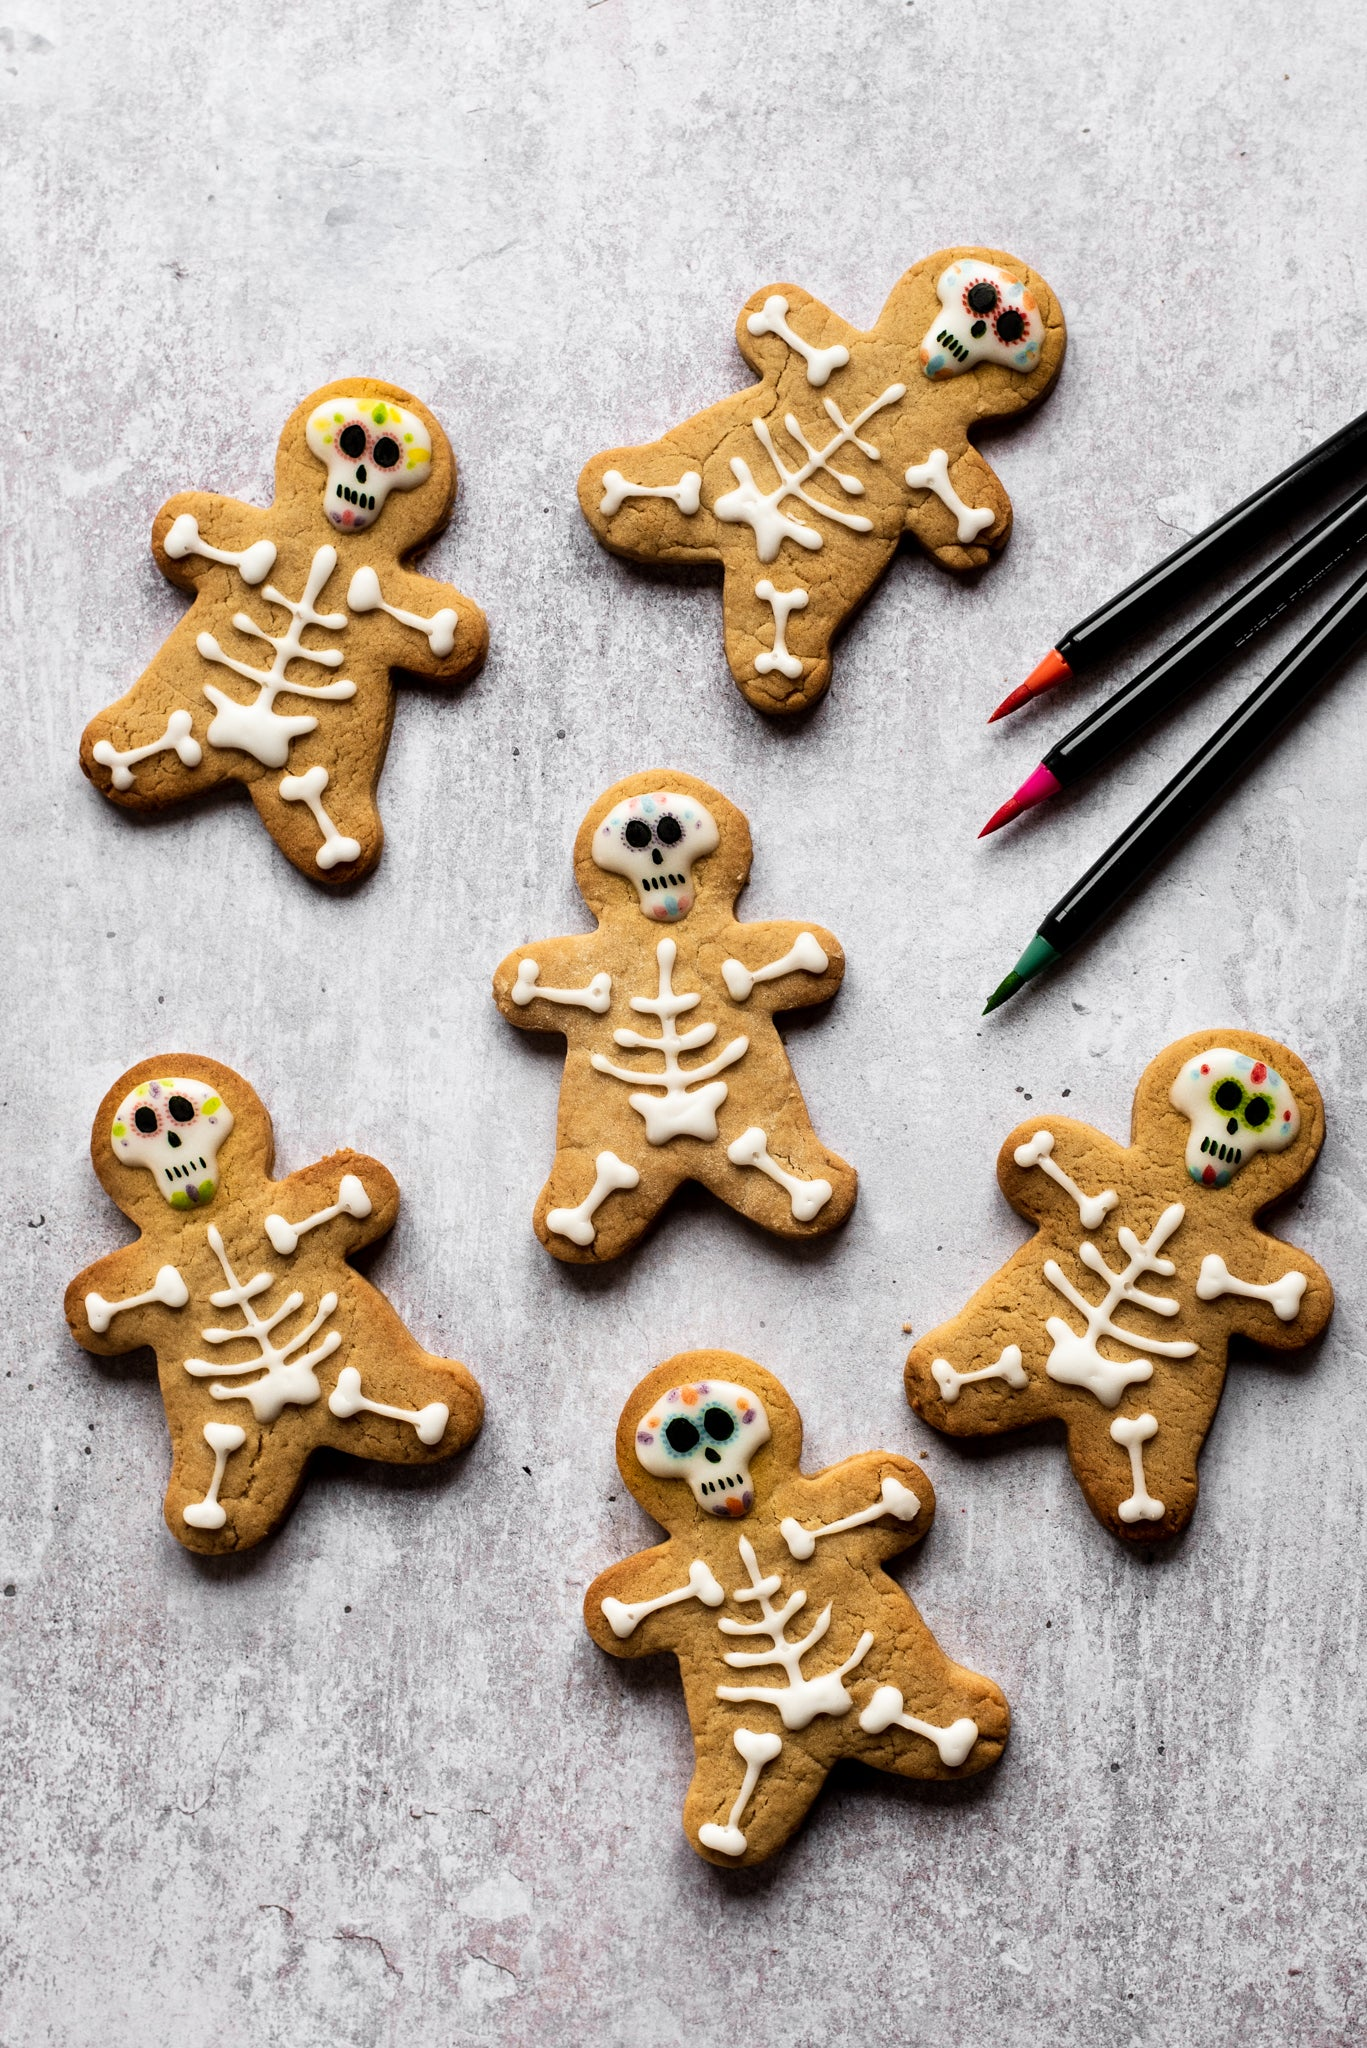 Day-Of-The-Dead-Gingerbread-Biscuits-WEB-RES-3.jpg